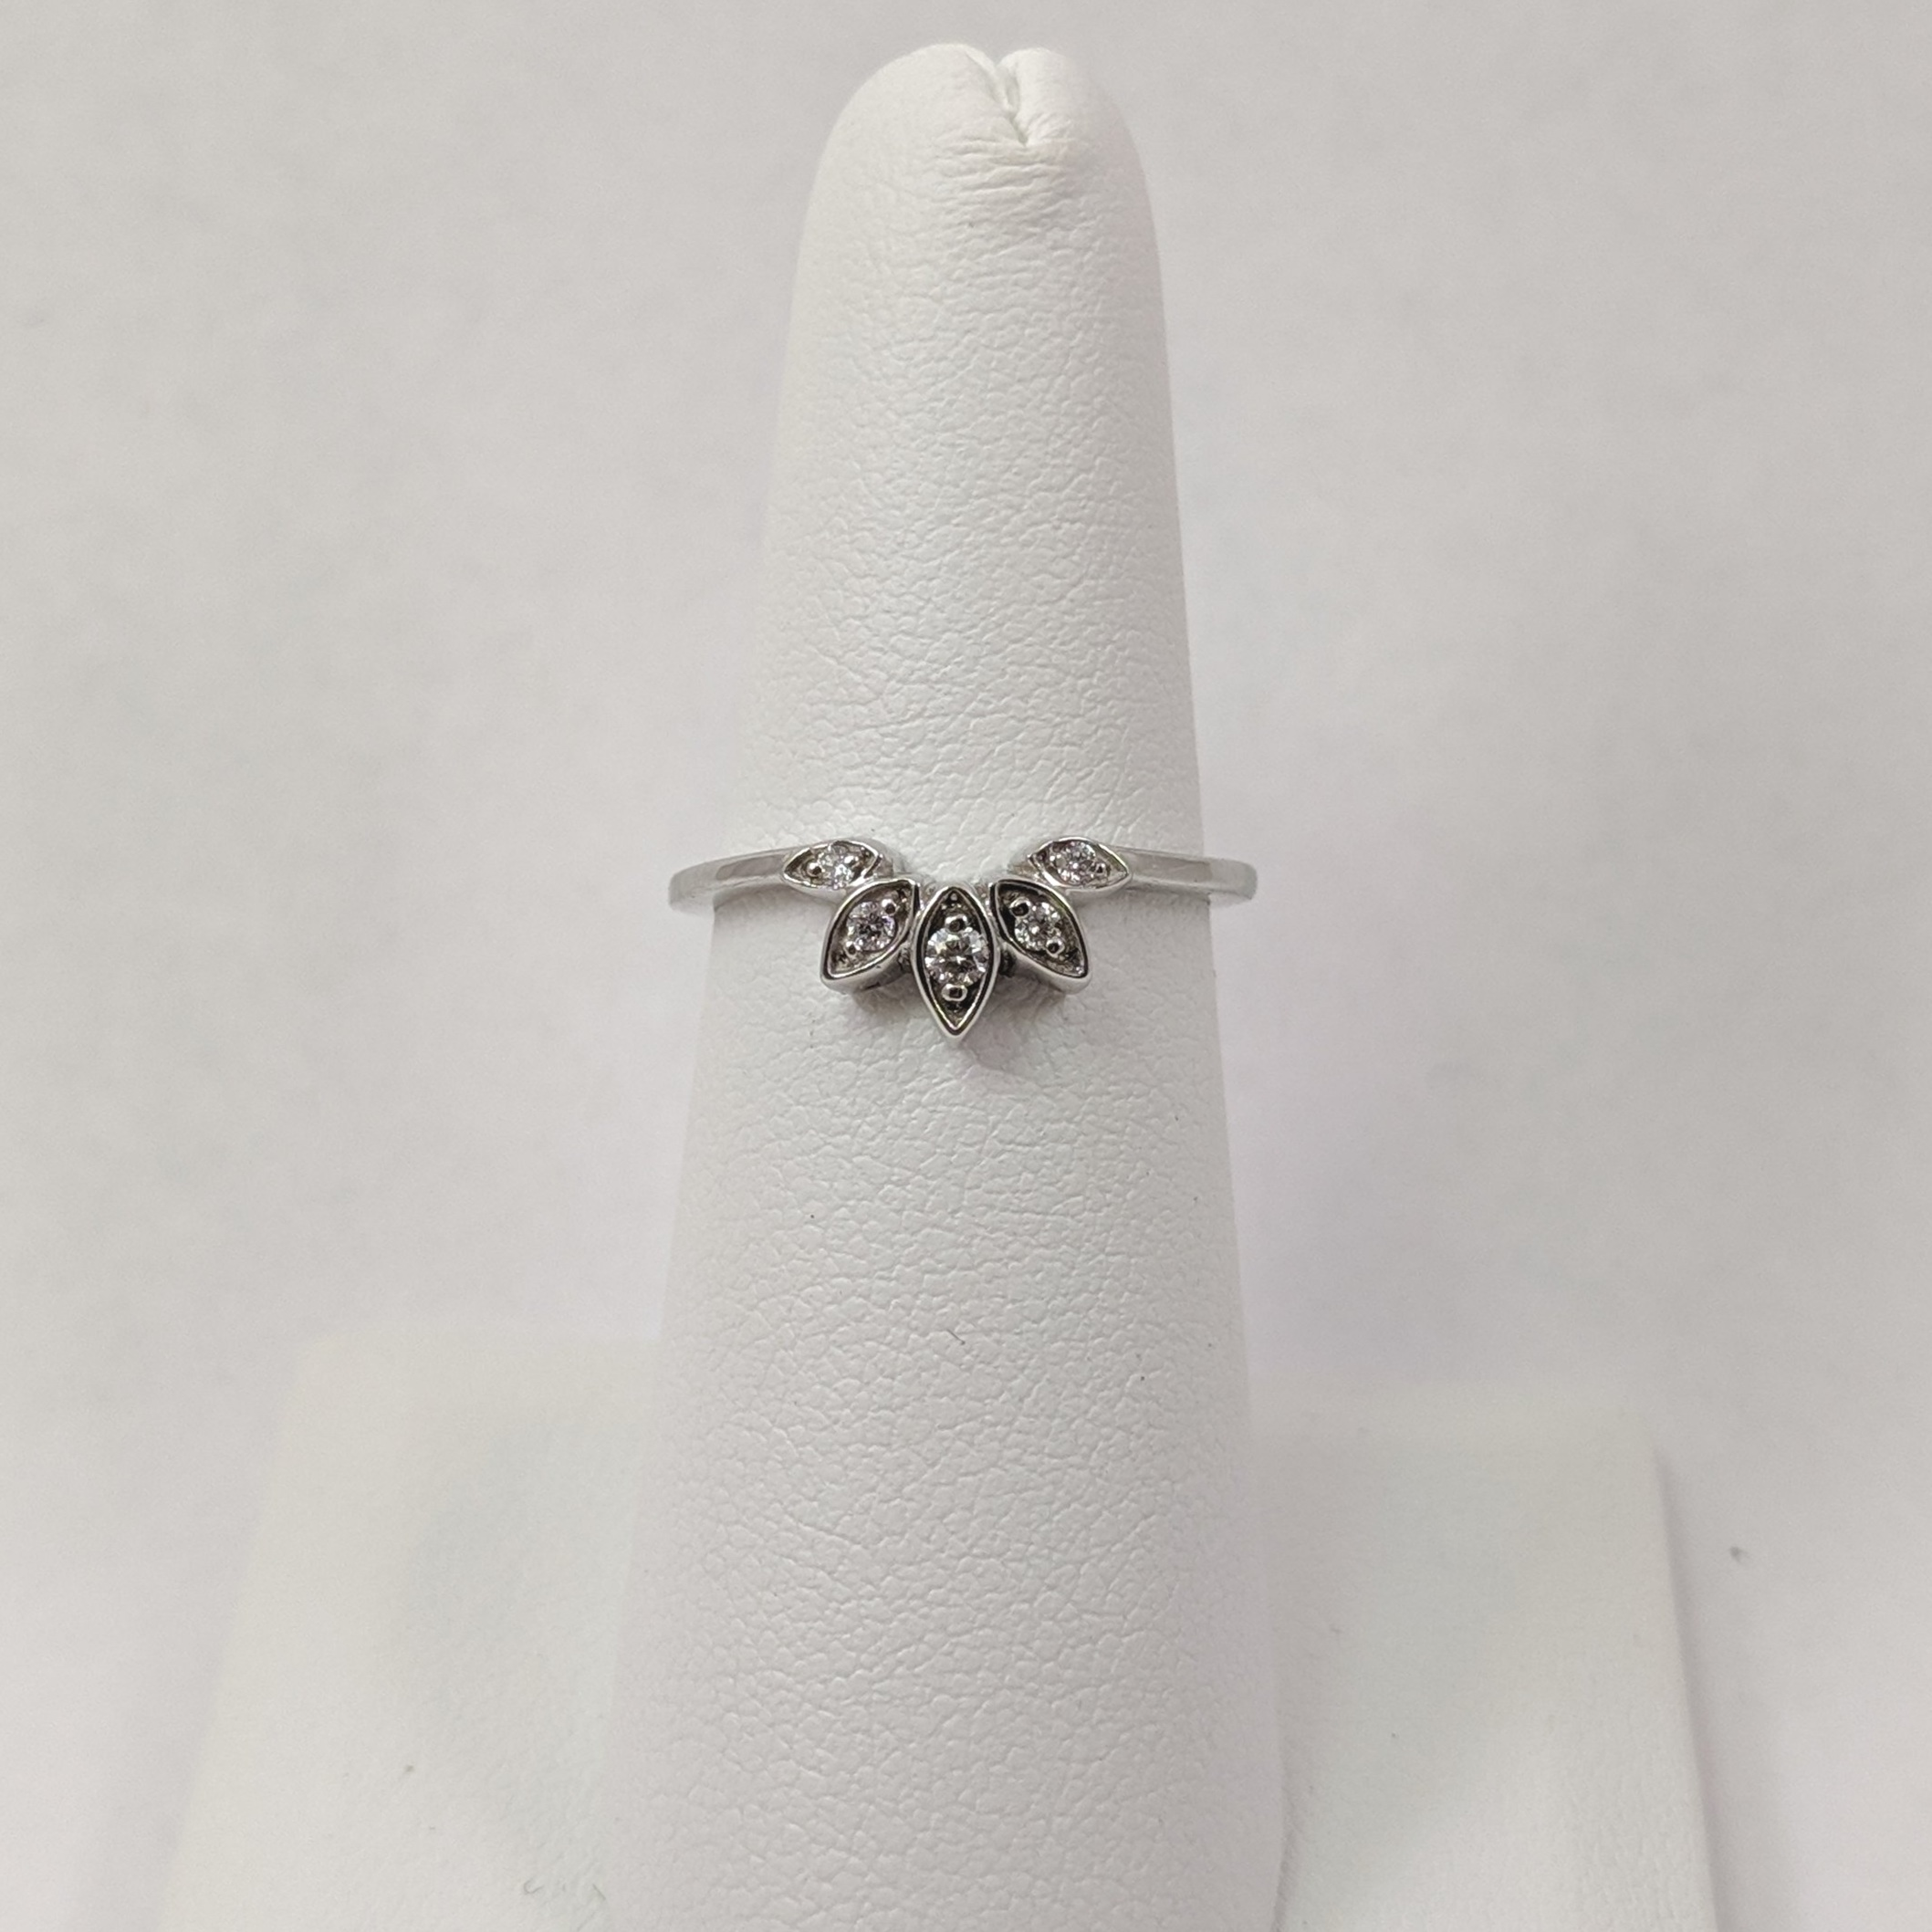 White gold wedding band with recycled diamonds.jpg